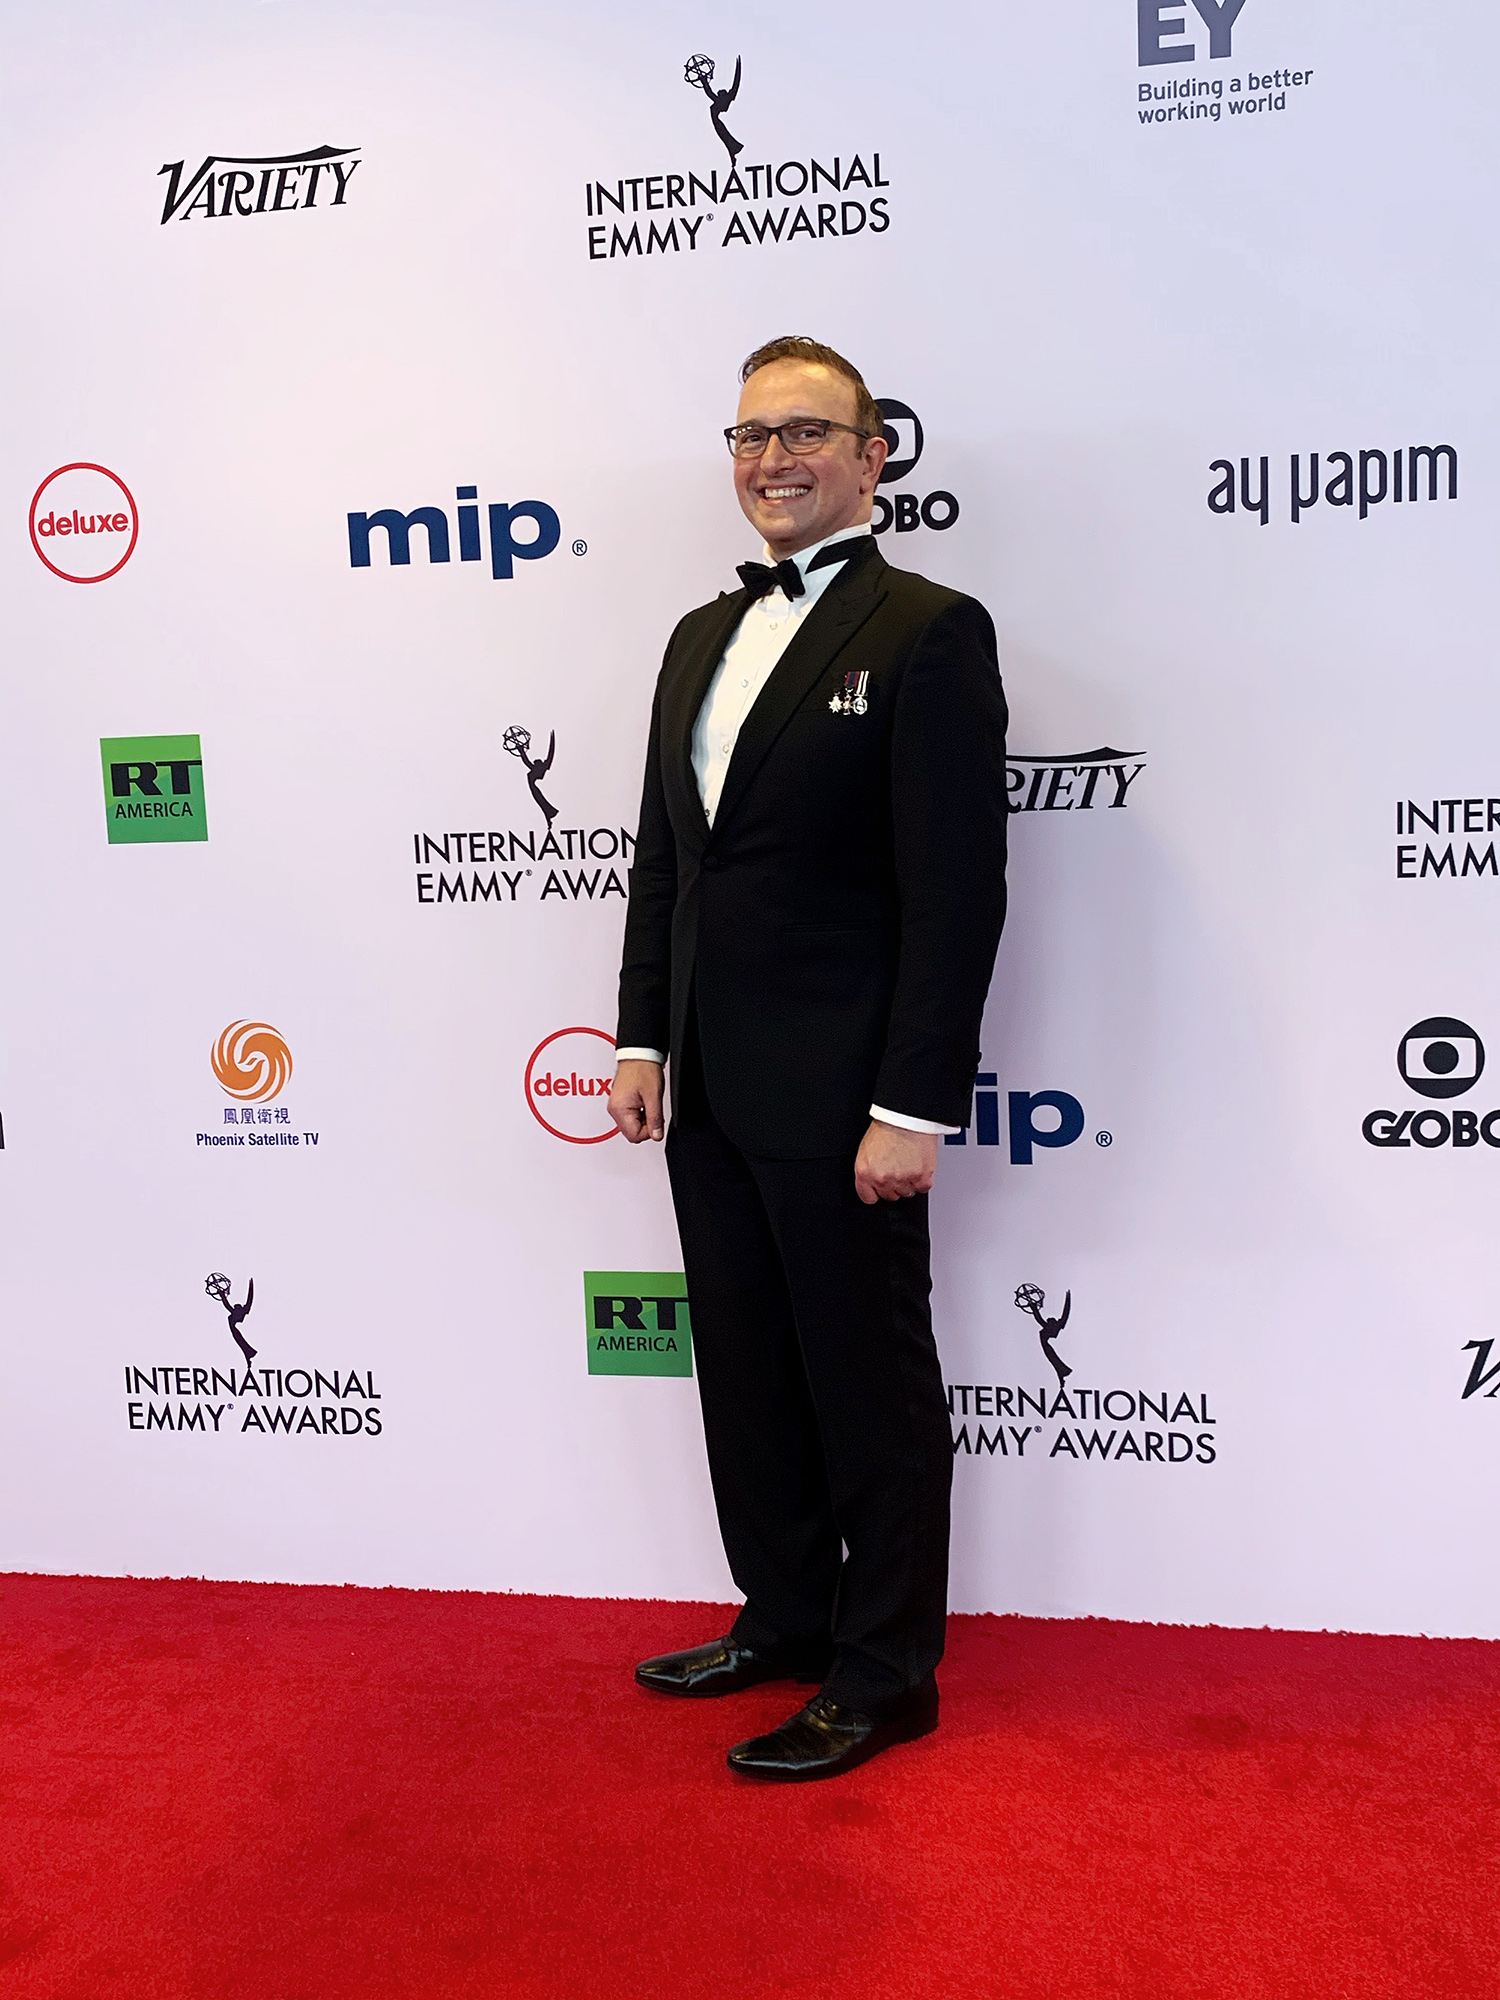 School of Business faculty member Dr. Stathis Kefallonitis attended the 47th International Emmy Awards ceremony